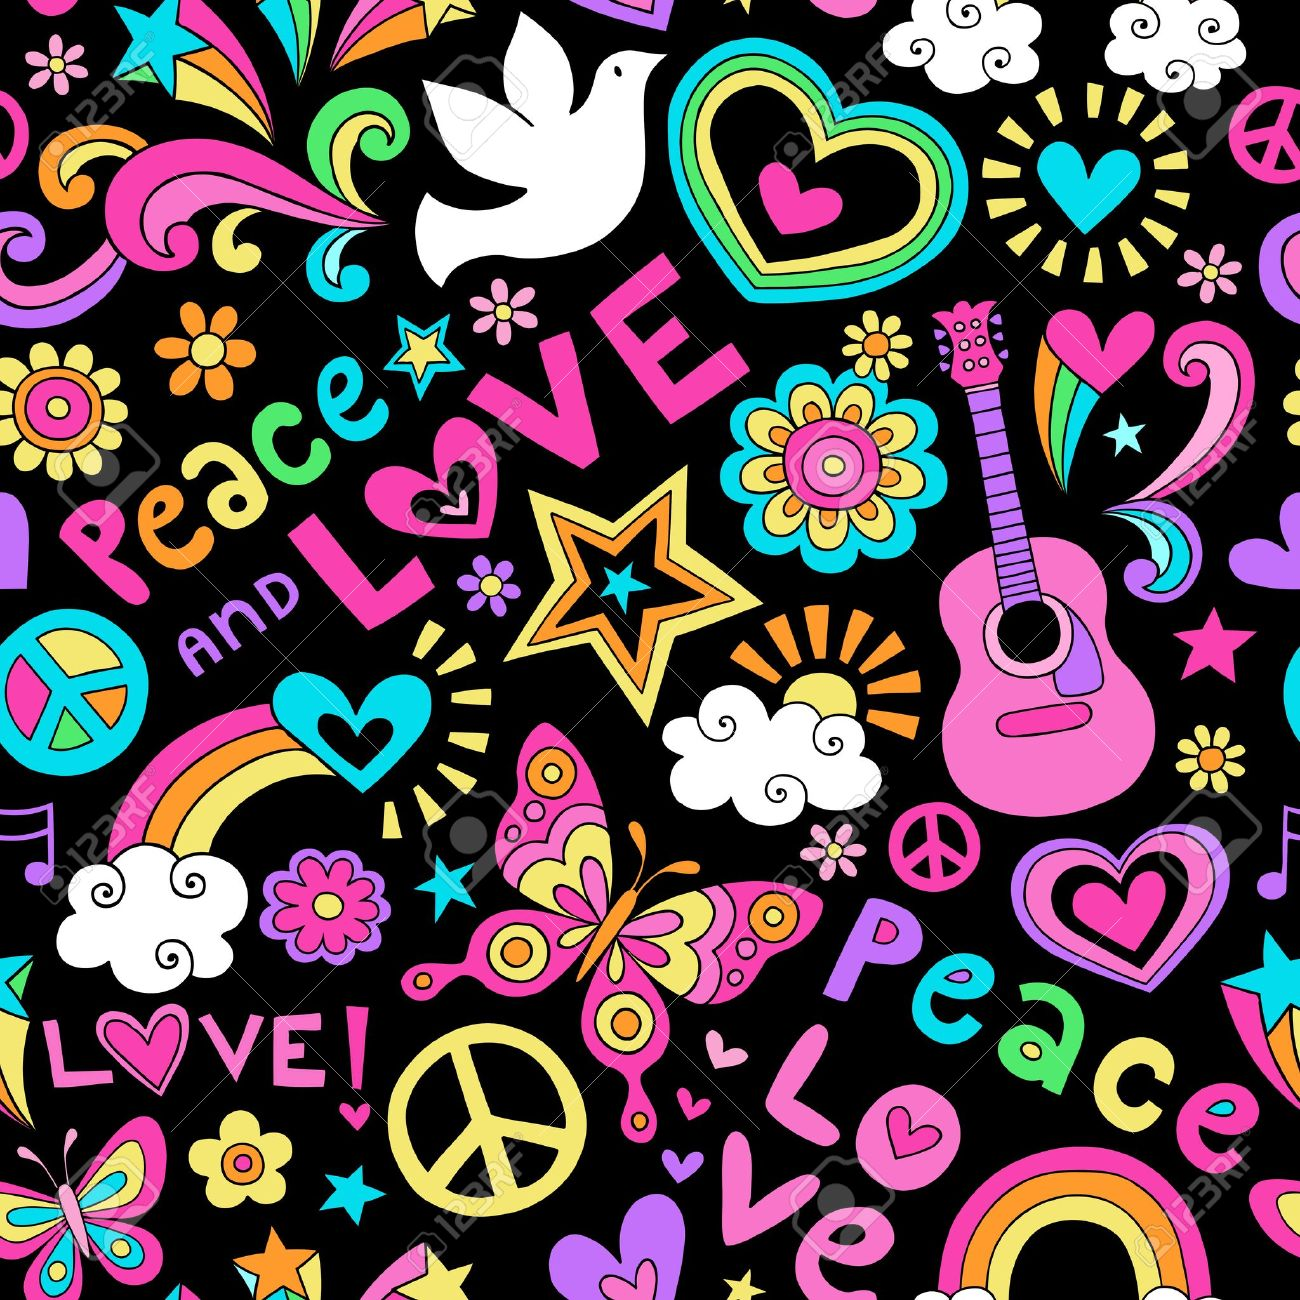 Peace, Love, and Music Seamless Pattern Groovy Notebook Doodle Design- Hand-Drawn Illustration Background Stock Vector - 22074882